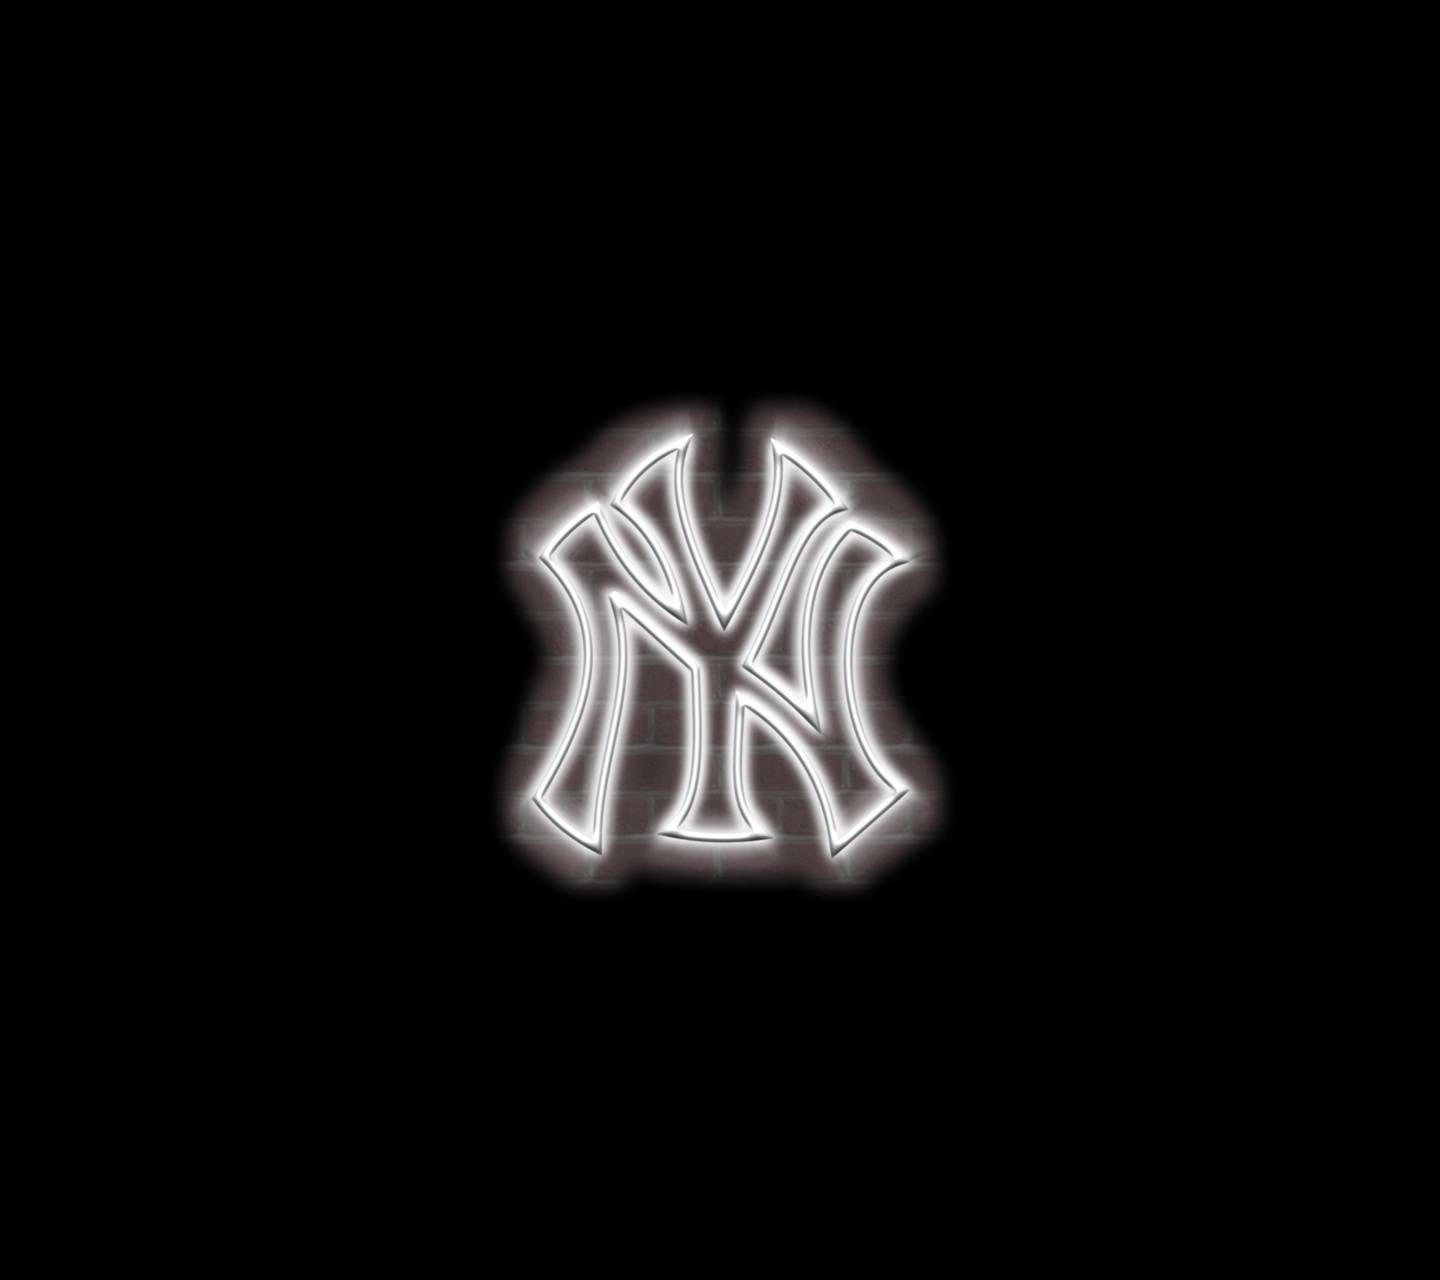 New York Yankees Wallpaper By Buzzcon 7b Free On Zedge